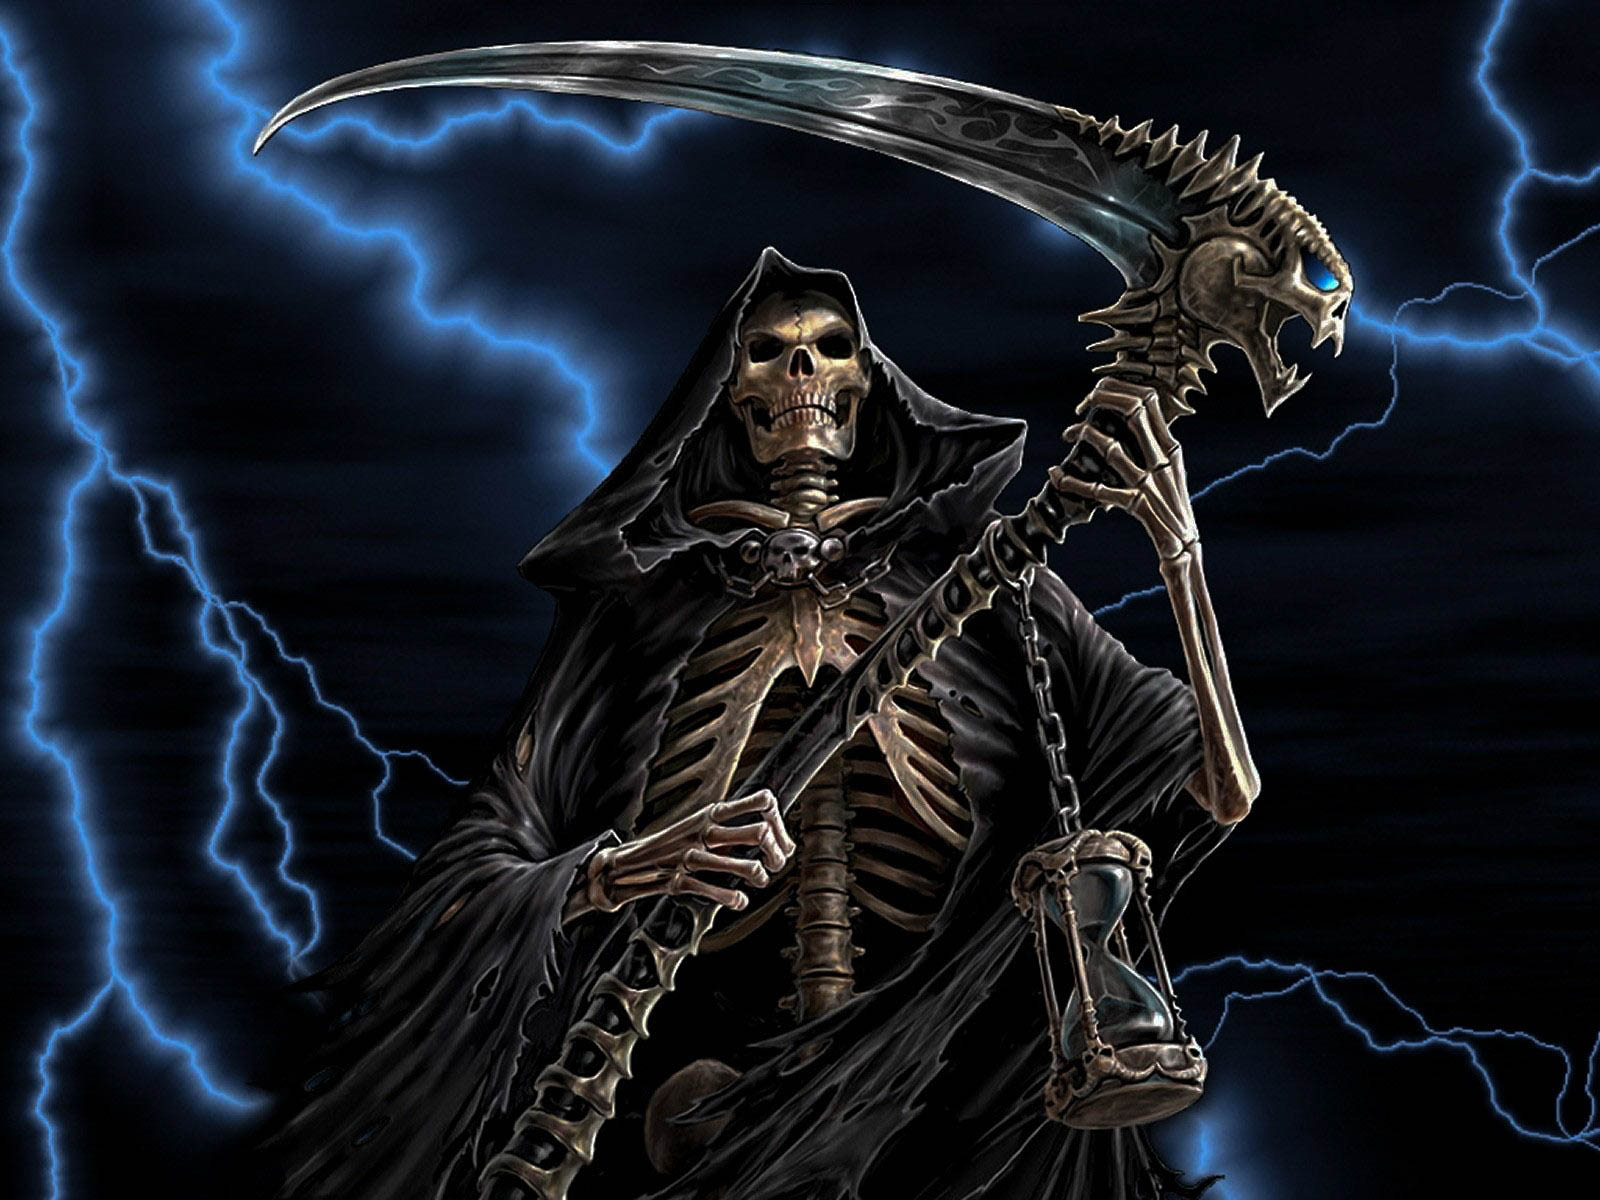 Grim Reaper Amazing Wallpapers Images Hd Pictures High Quality